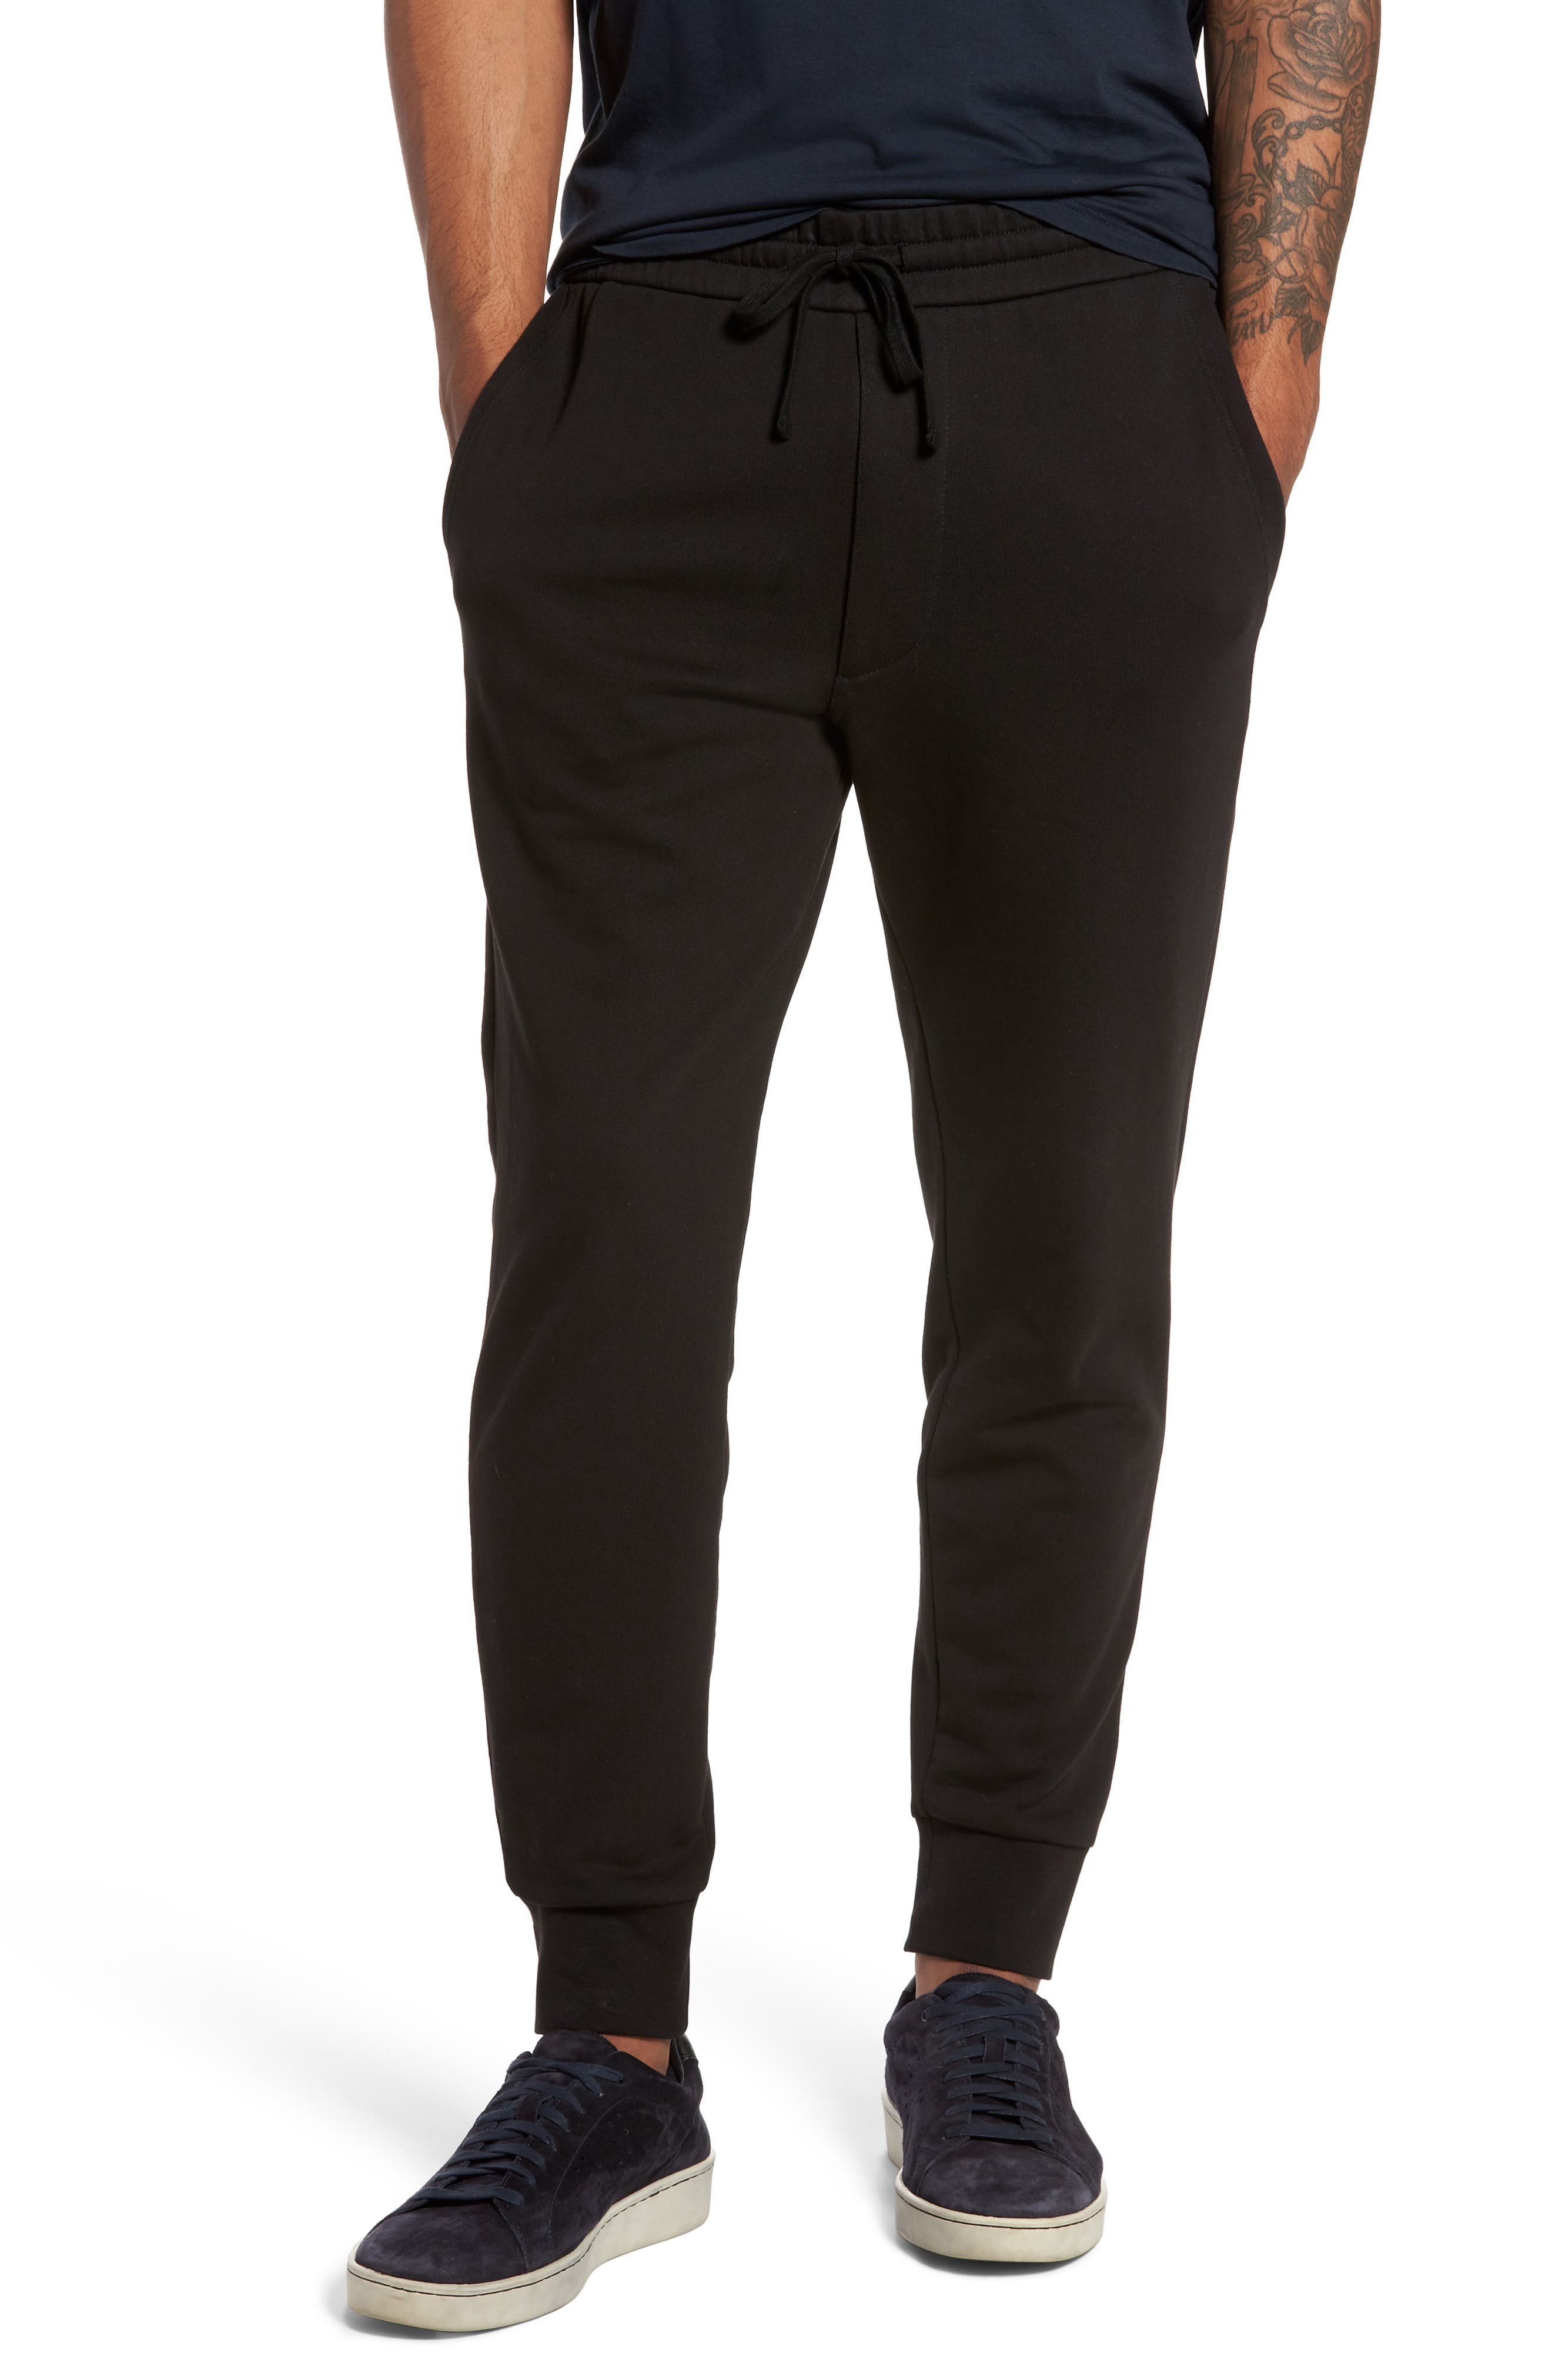 Cotton Sweatpants,                         Main,                         color, Black